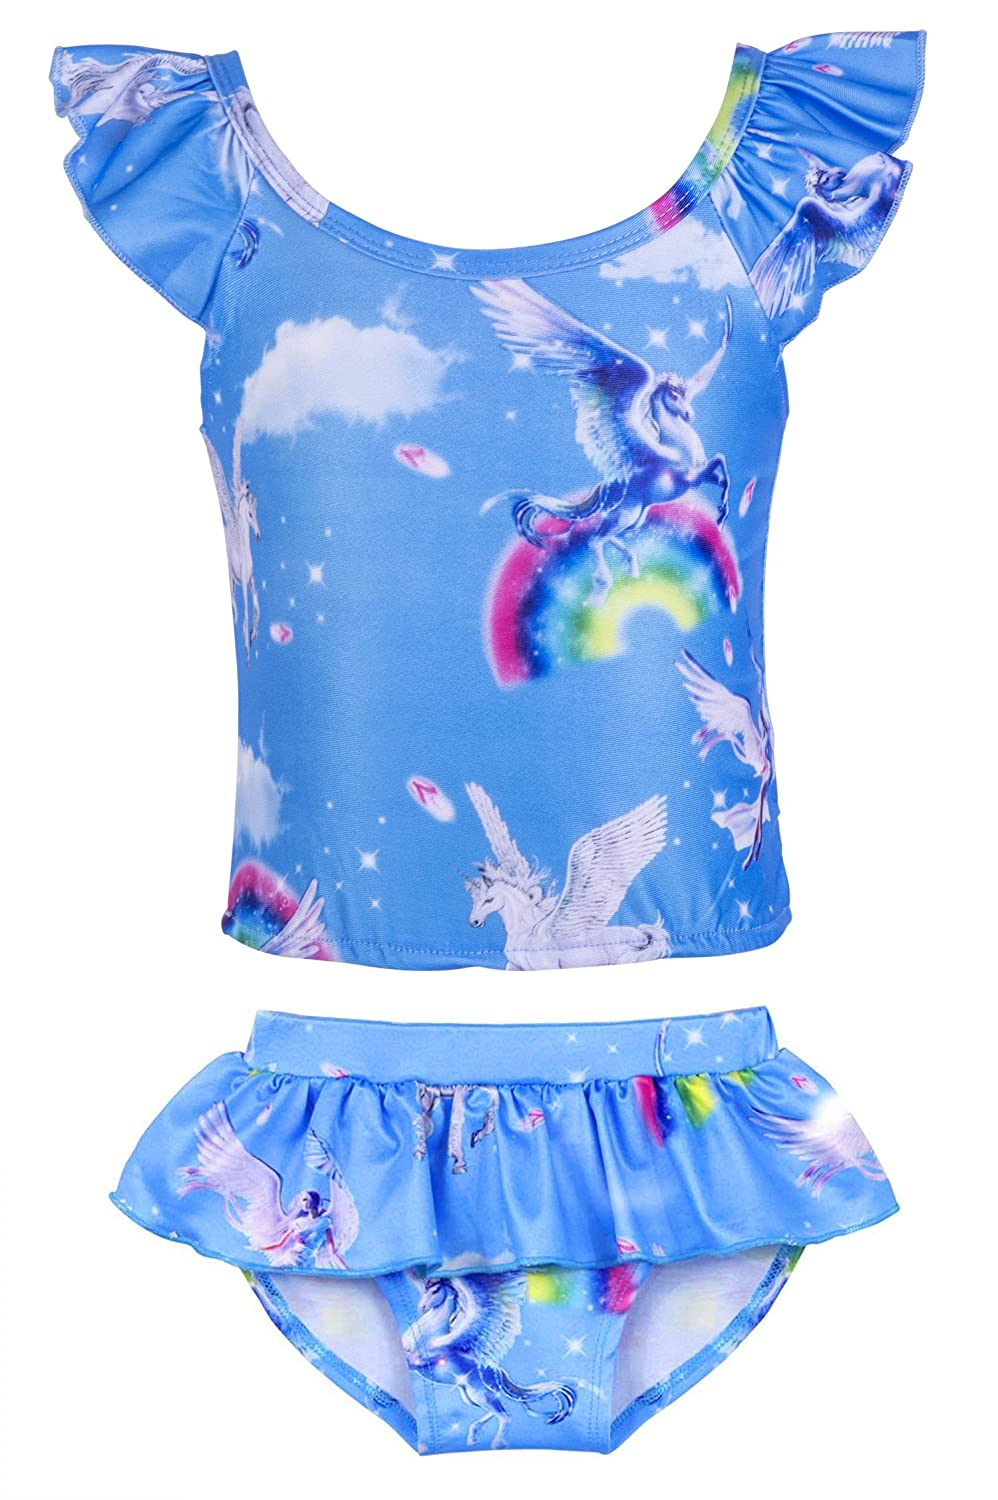 e0d4ce2f0ca94 Stretchy, soft and lightweight, it is comfortable to swim in the water.  This cute girl rainbow unicorn ...